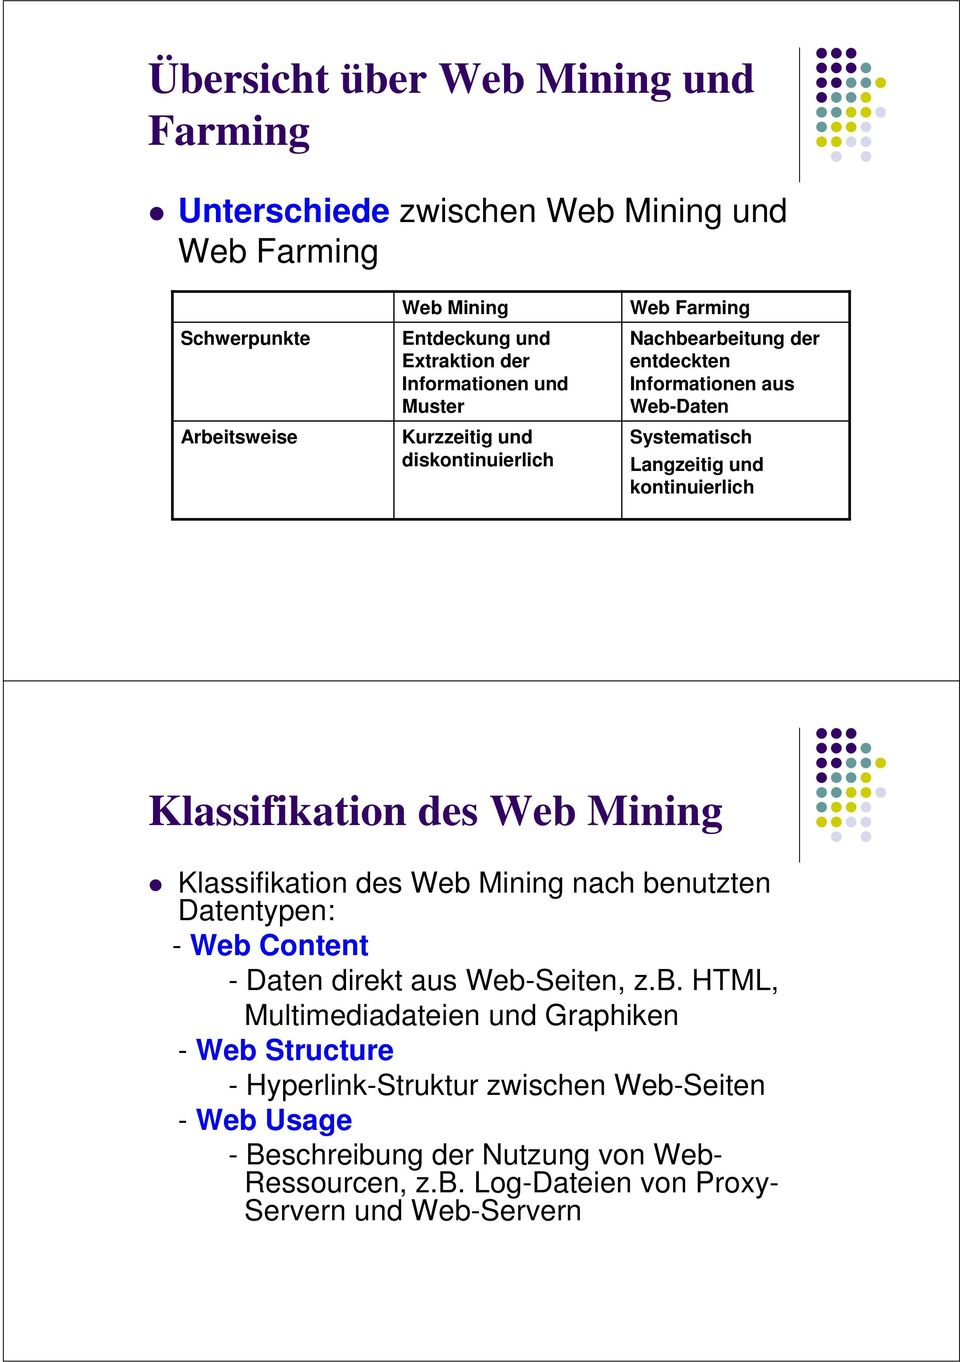 Klassifikation des Web